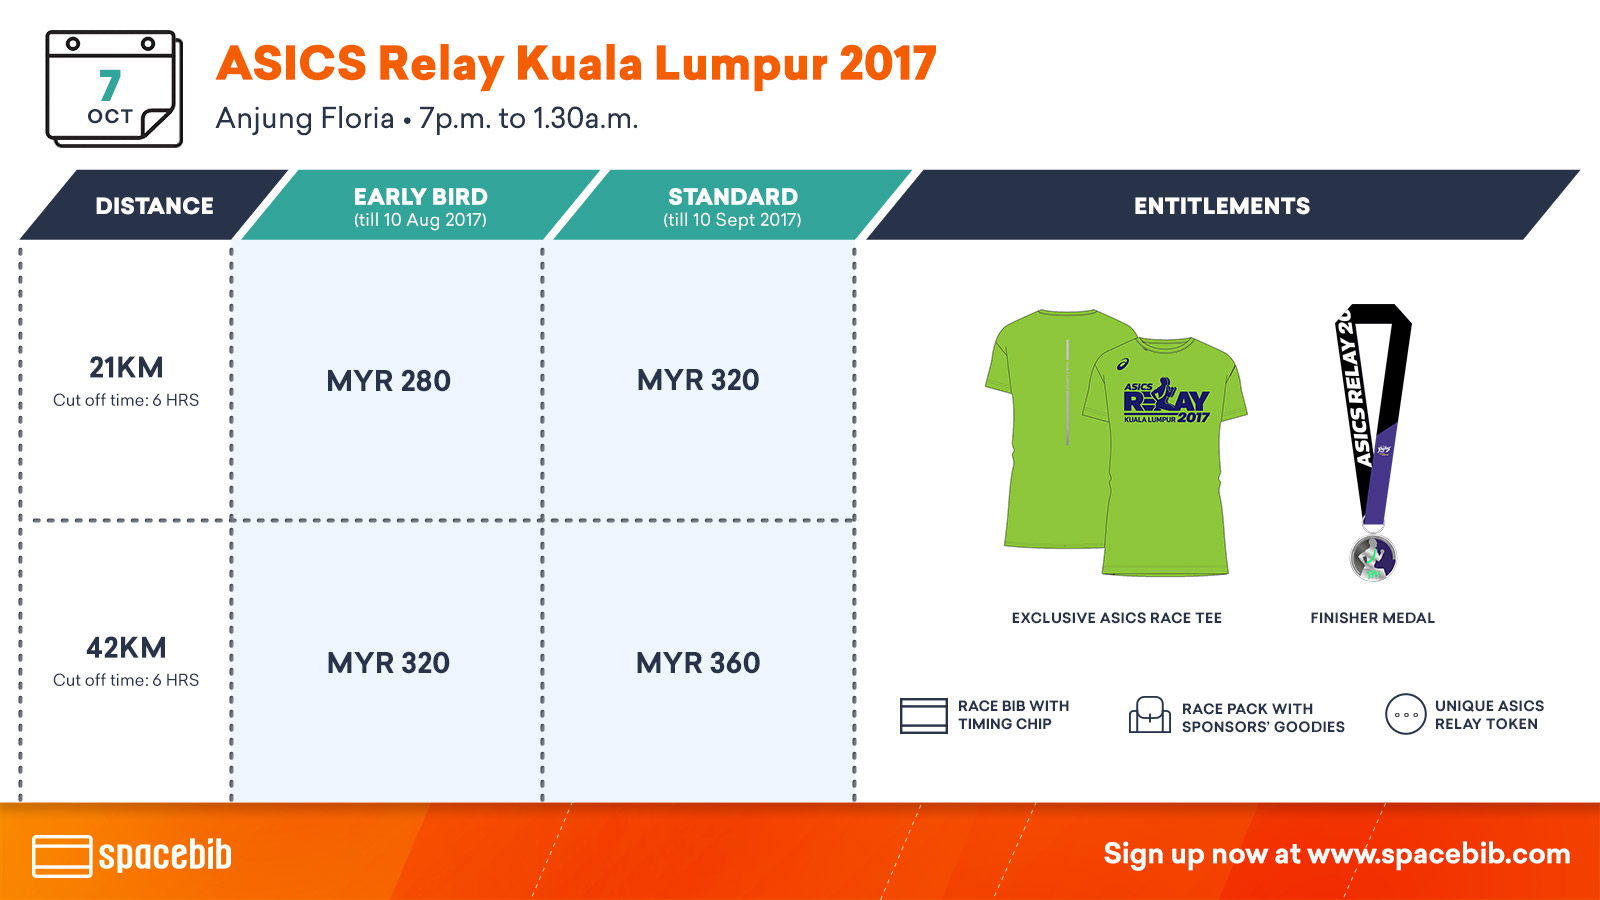 At the ASICS Relay Kuala Lumpur this Year, The Hand-off is King!